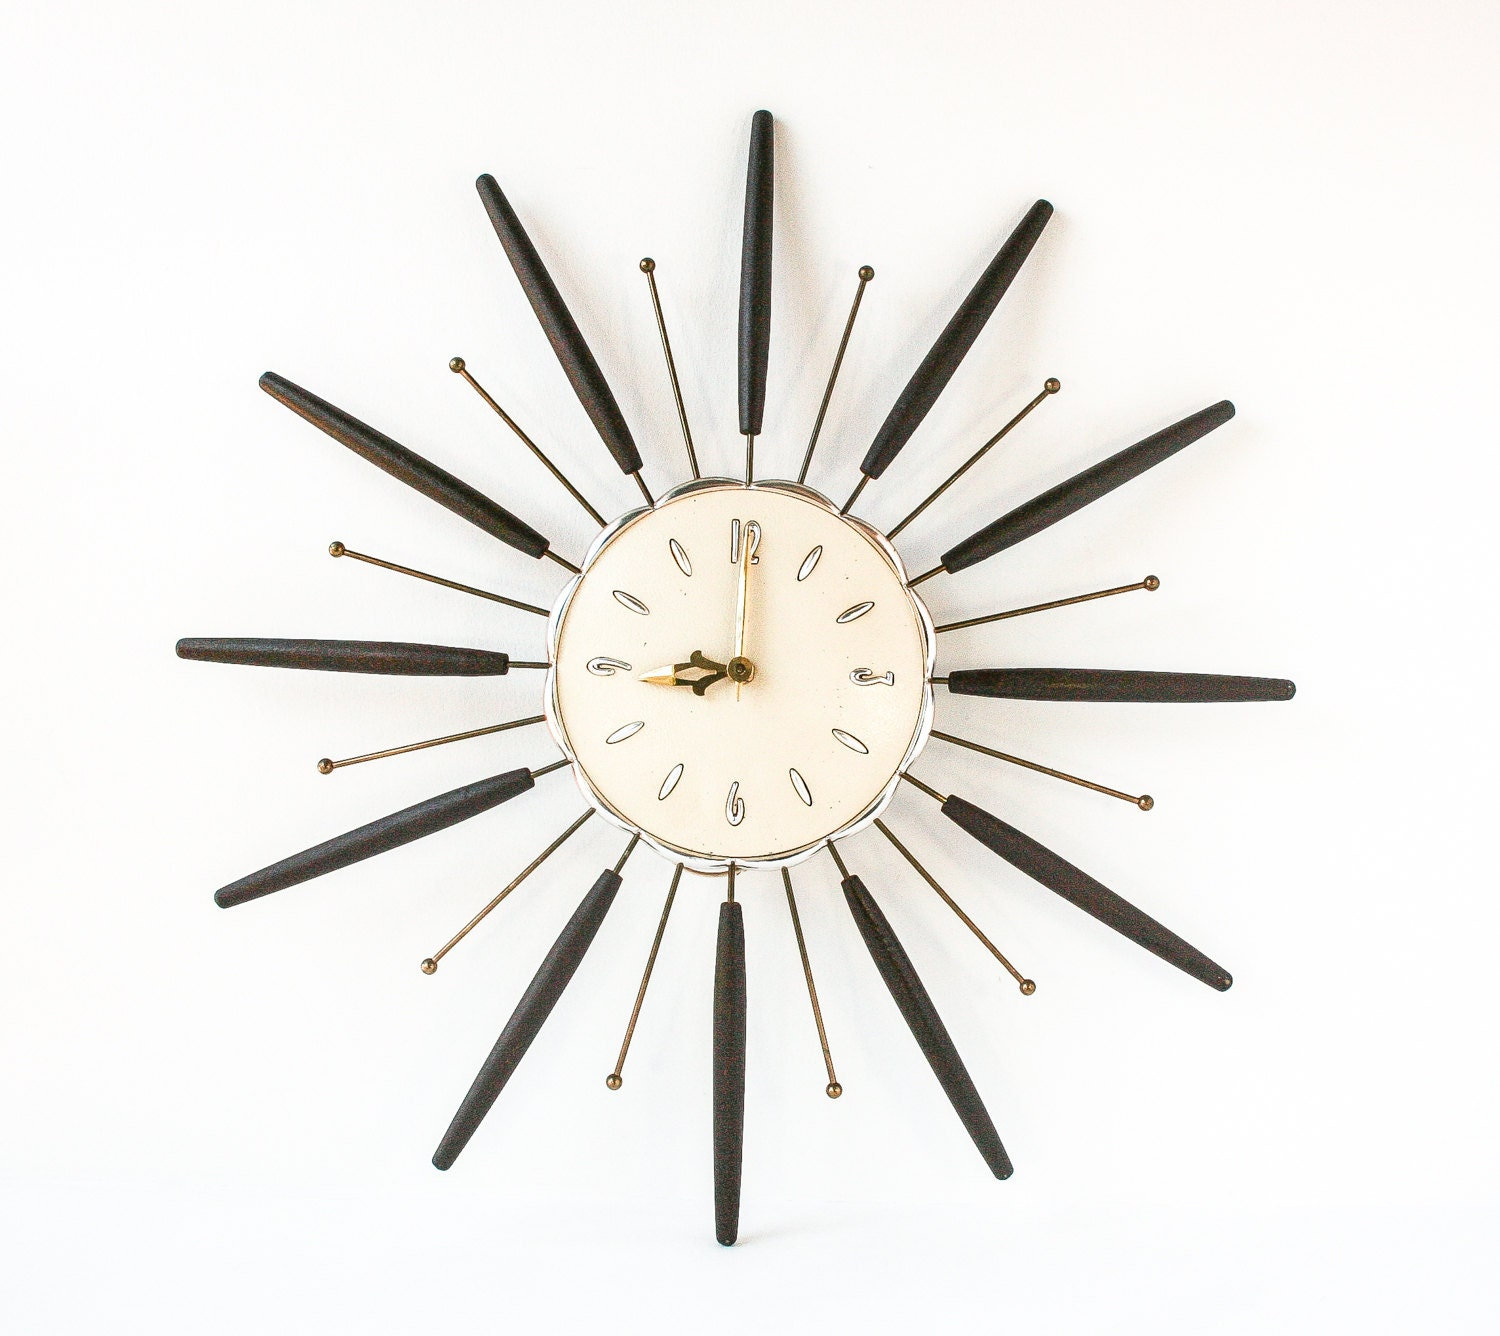 Retro Starburst Wall Decor : Vintage starburst wall clock retro mid century by